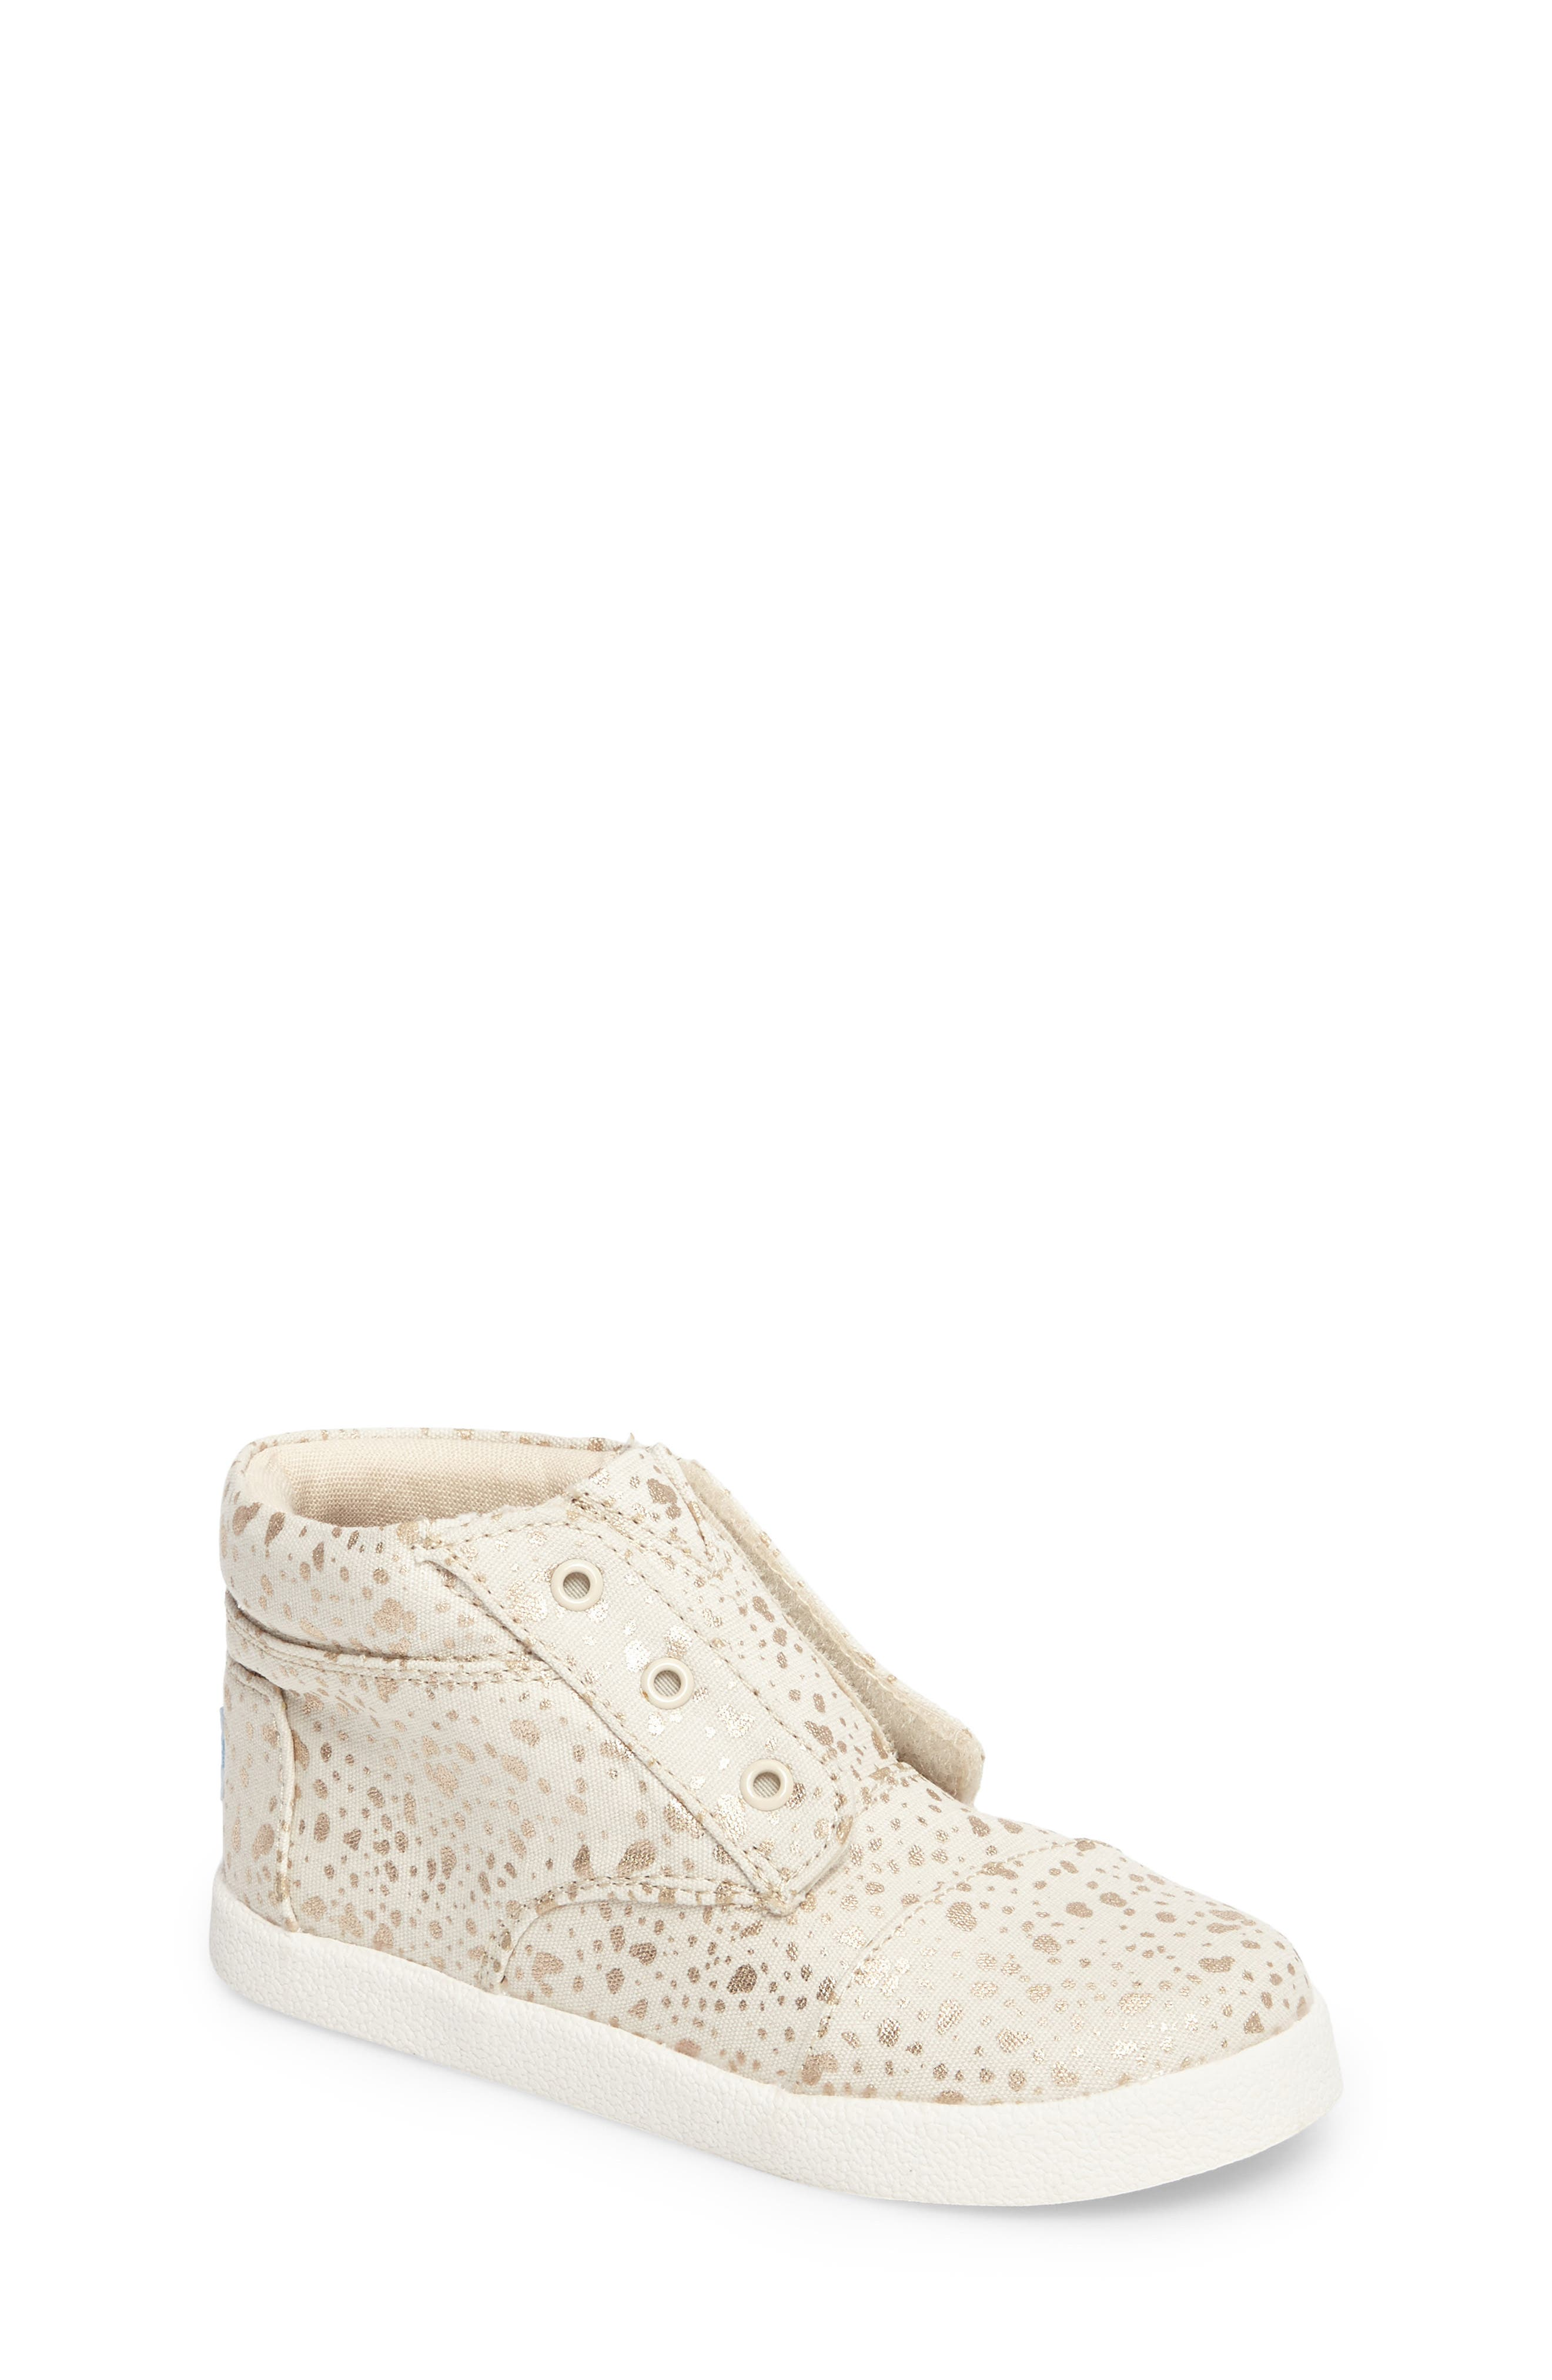 Alternate Image 1 Selected - TOMS Paseo High Top Sneaker (Baby, Walker & Toddler)